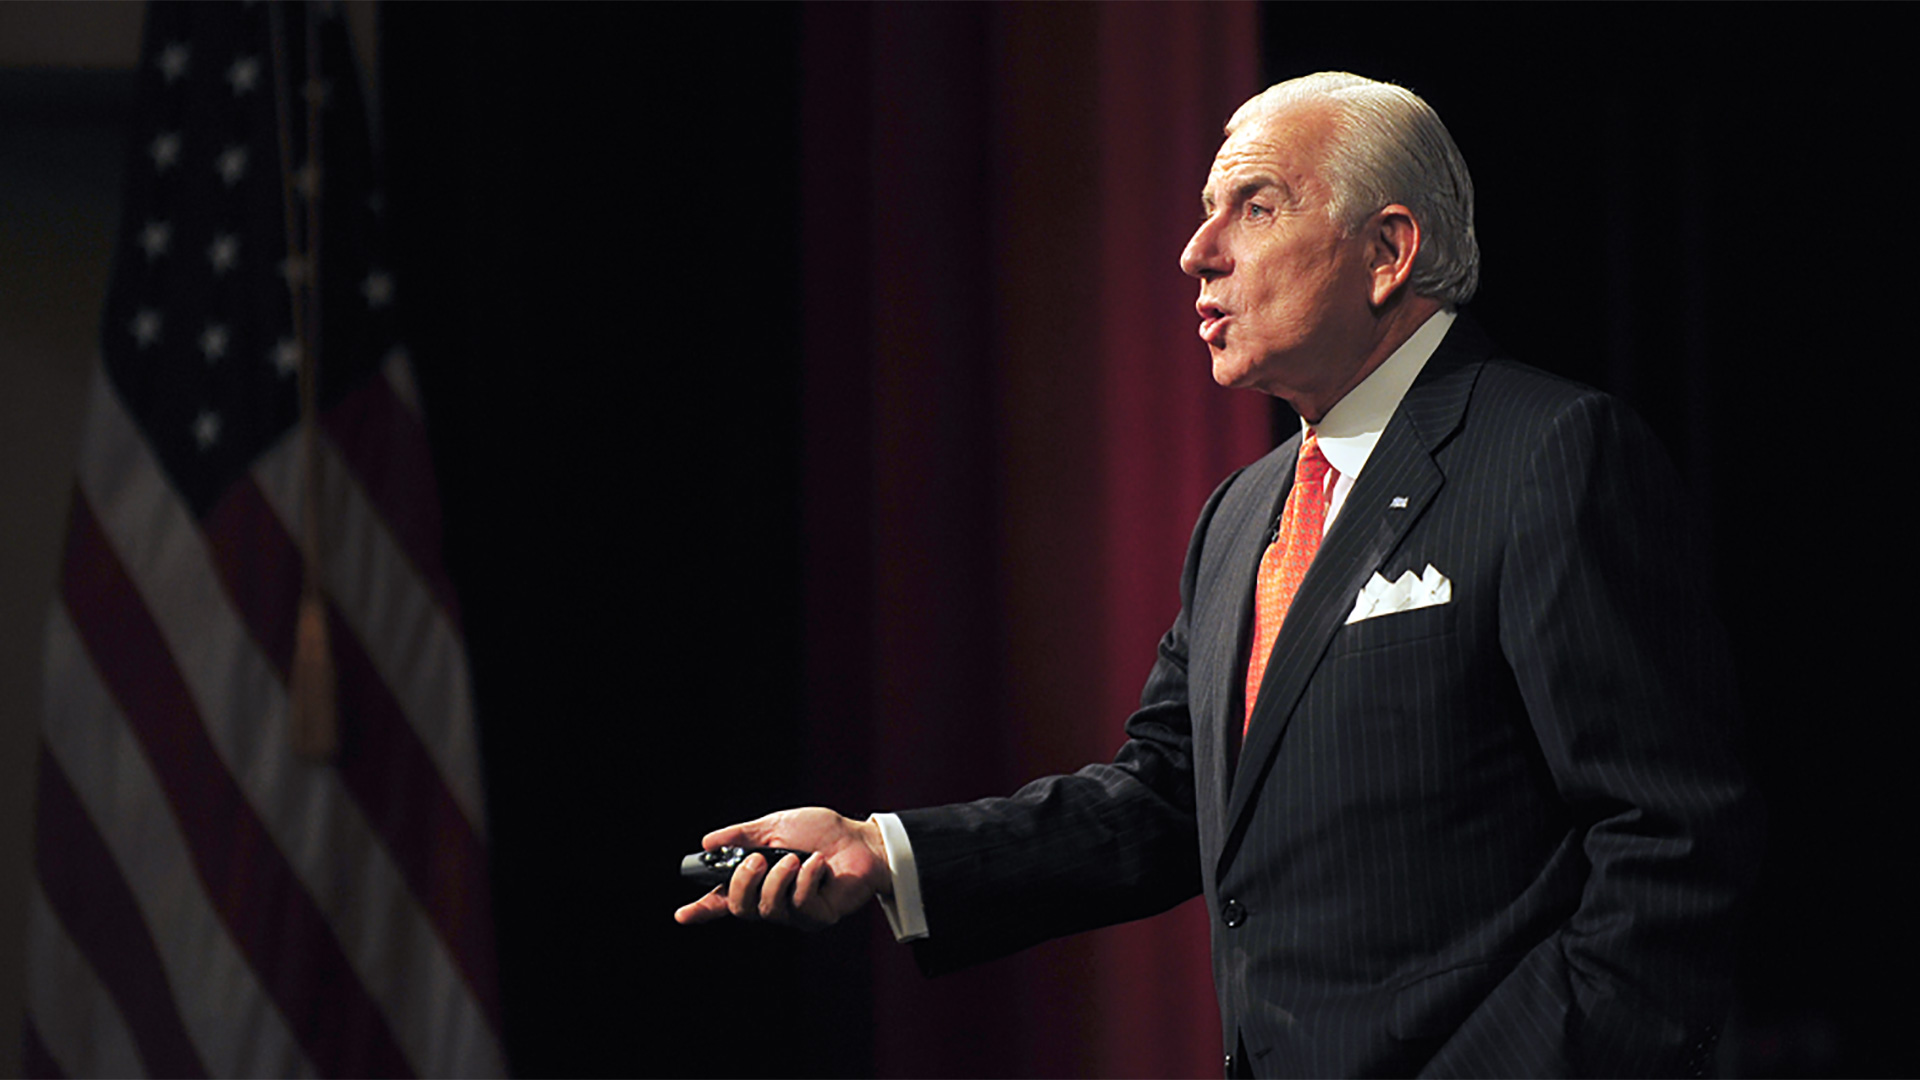 Host, High Point University president Nido Qubein